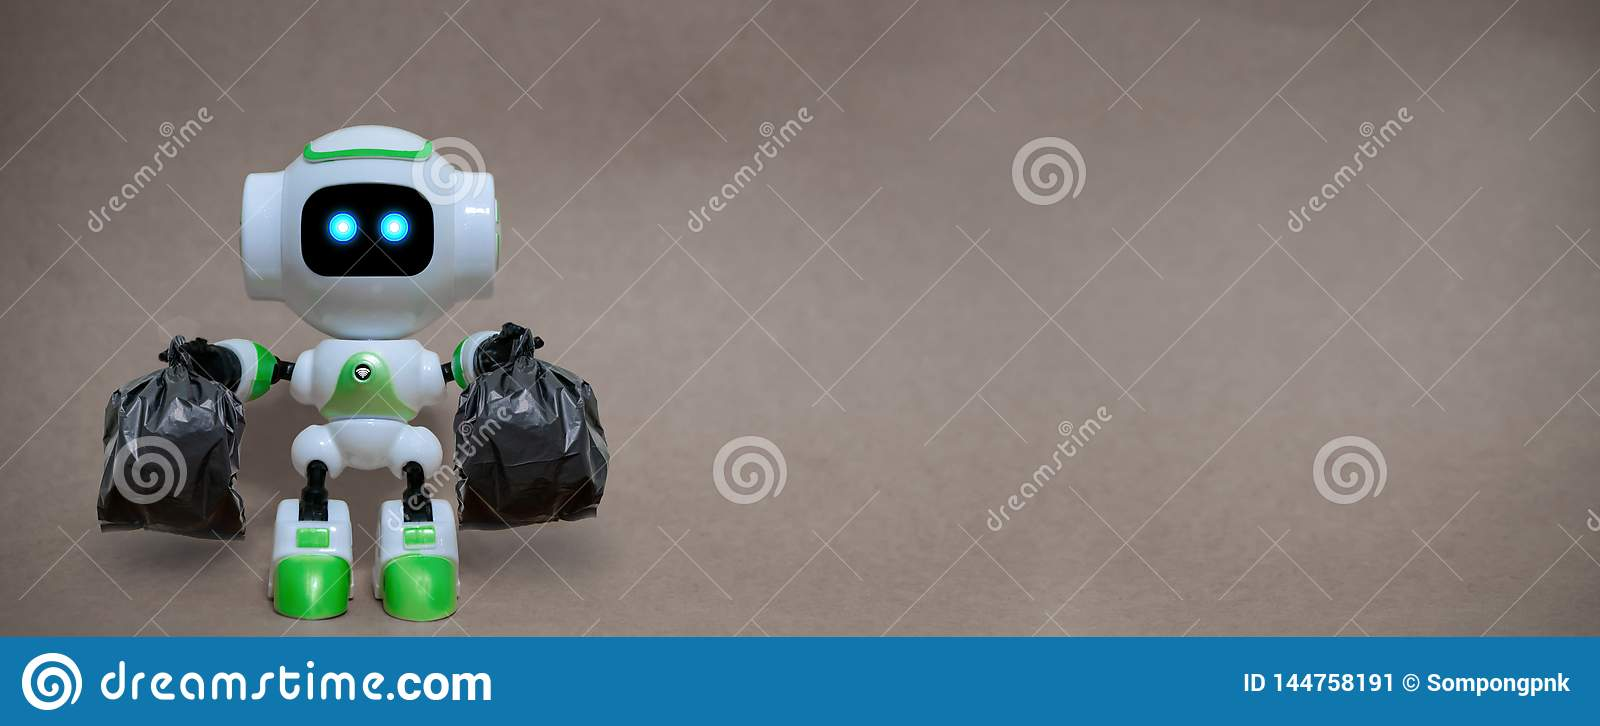 Robot hold garbage bags technology recycle environment